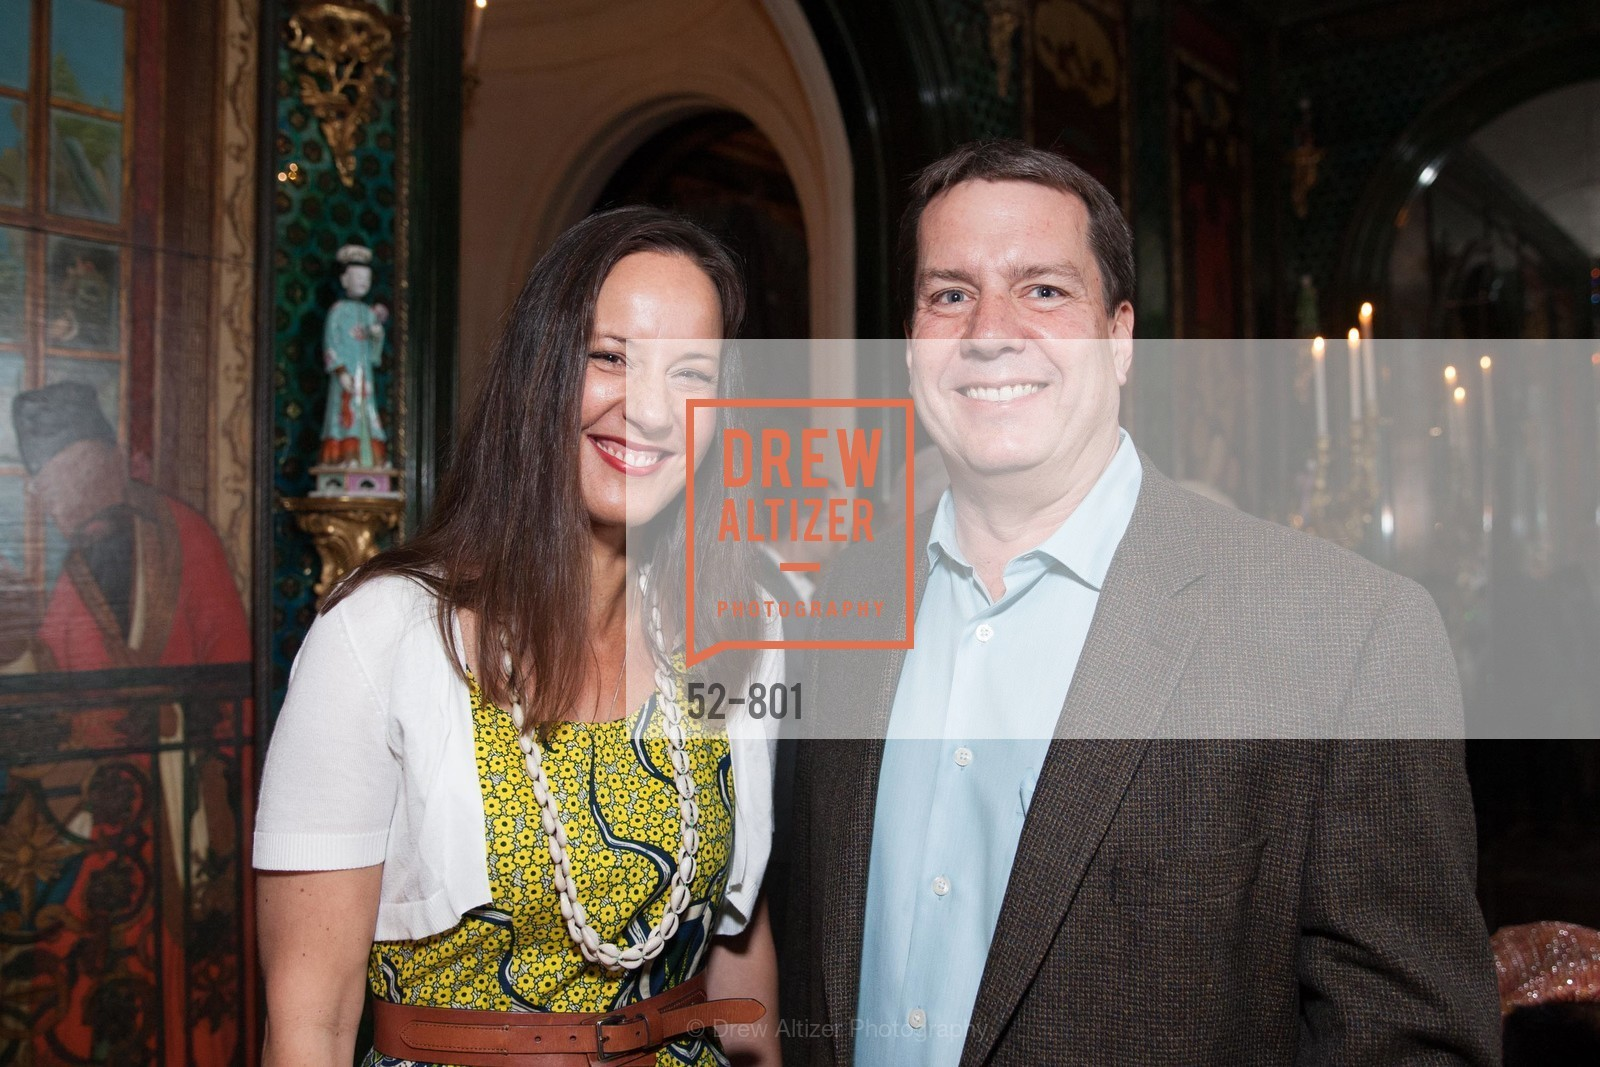 Top Picks, GETTY Hosts Leakey Foundation Dinner, April 23rd, 2015, Photo,Drew Altizer, Drew Altizer Photography, full-service agency, private events, San Francisco photographer, photographer california